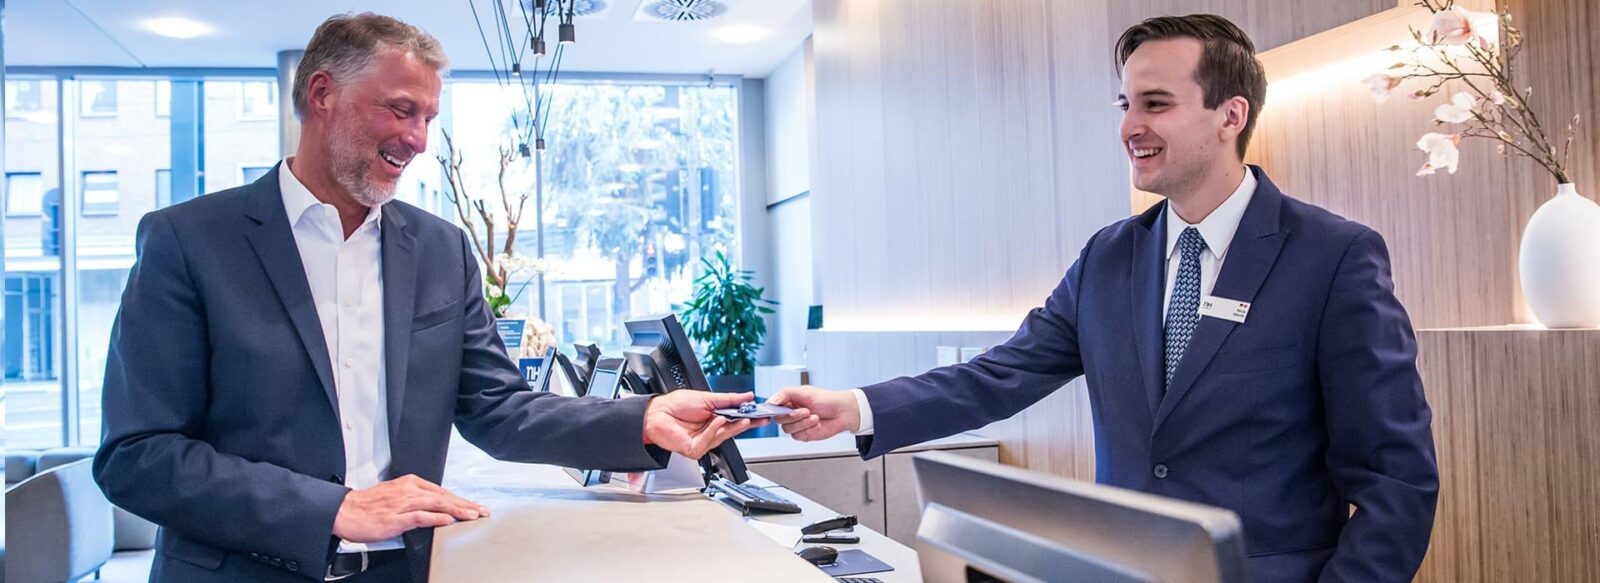 Check In Hotel Hm business travel 1 1 - Ihr Hotel für bauma 2022 in München